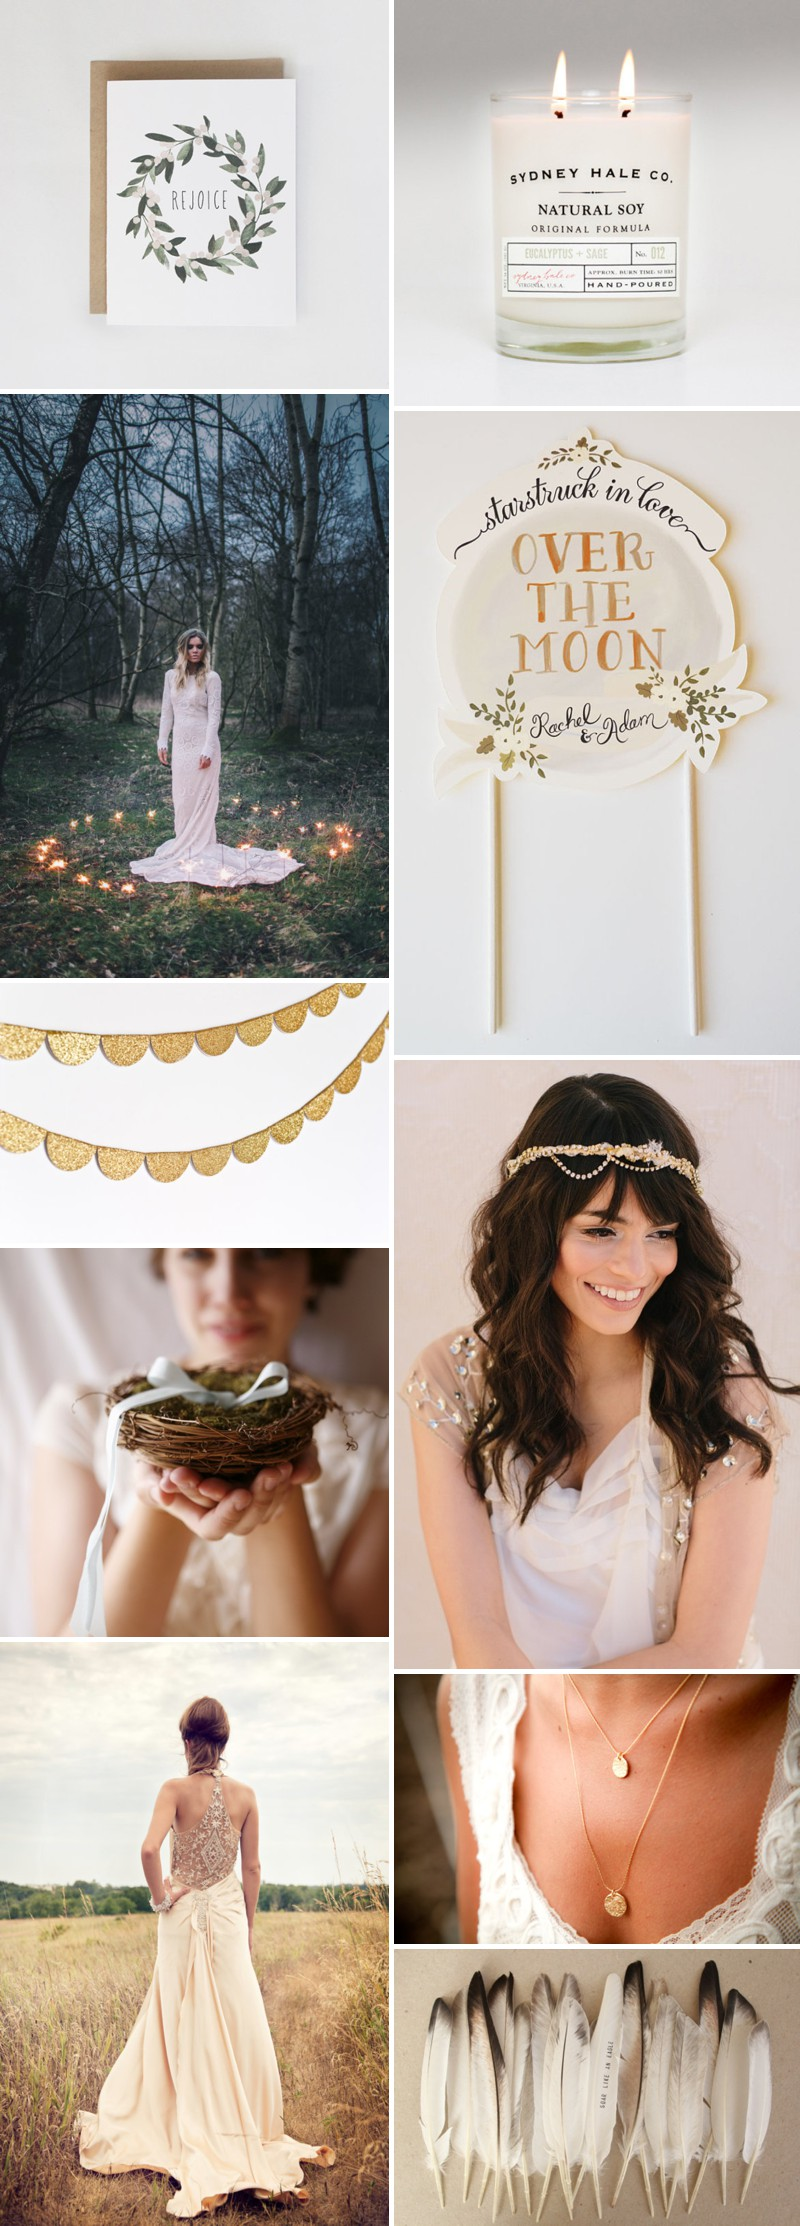 How To Create A Midsummer Night's Dream Inspired Wedding Using Products From Etsy._0002